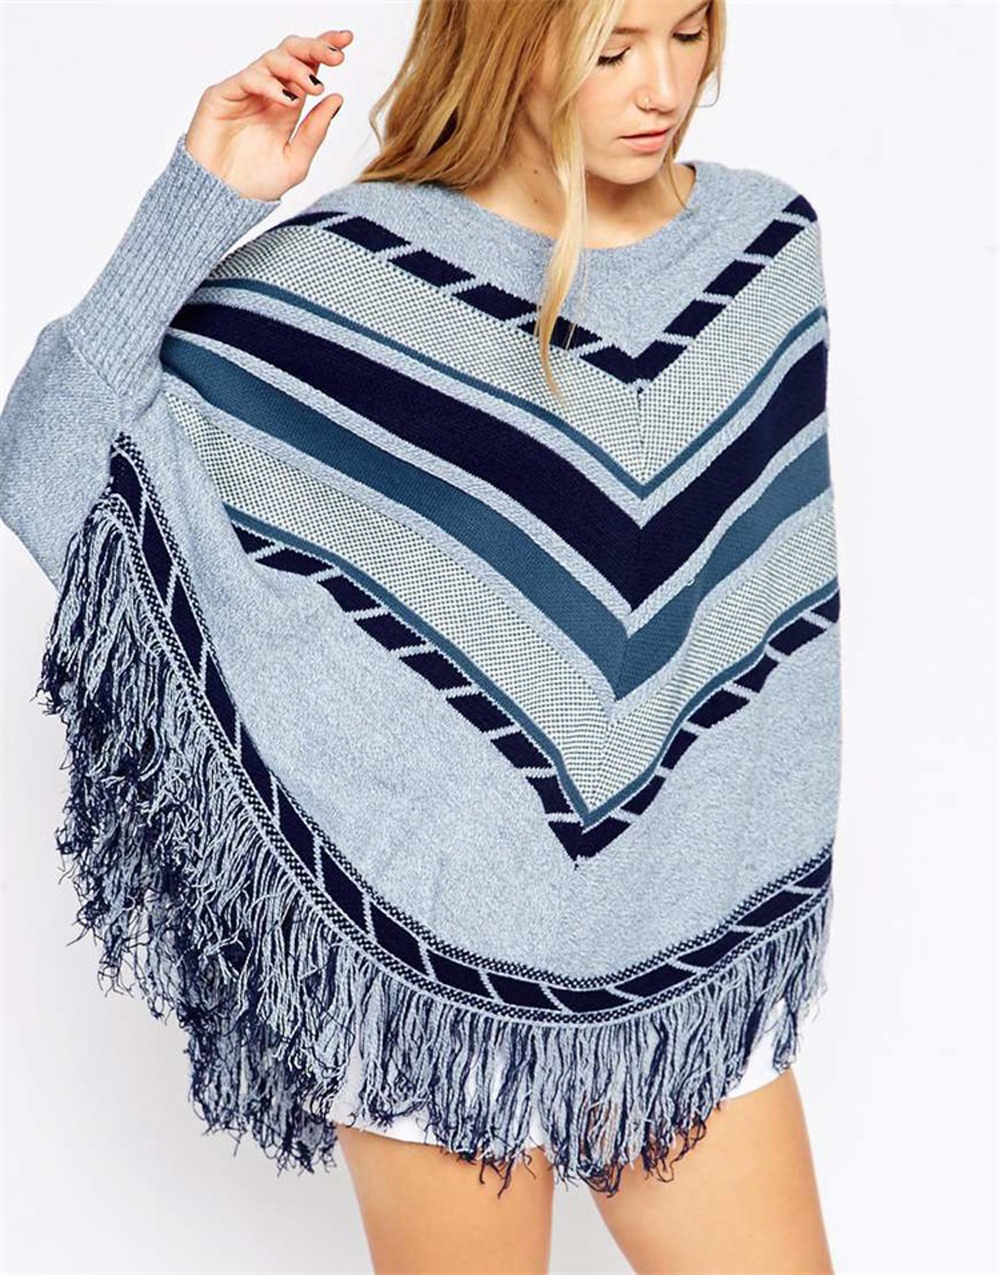 цена Maternity Tassel Cape Shawl Sweater Poncho Ladies' Cape with Fringed Hem Striped Patchwork Pullover Fashionable Retro Style